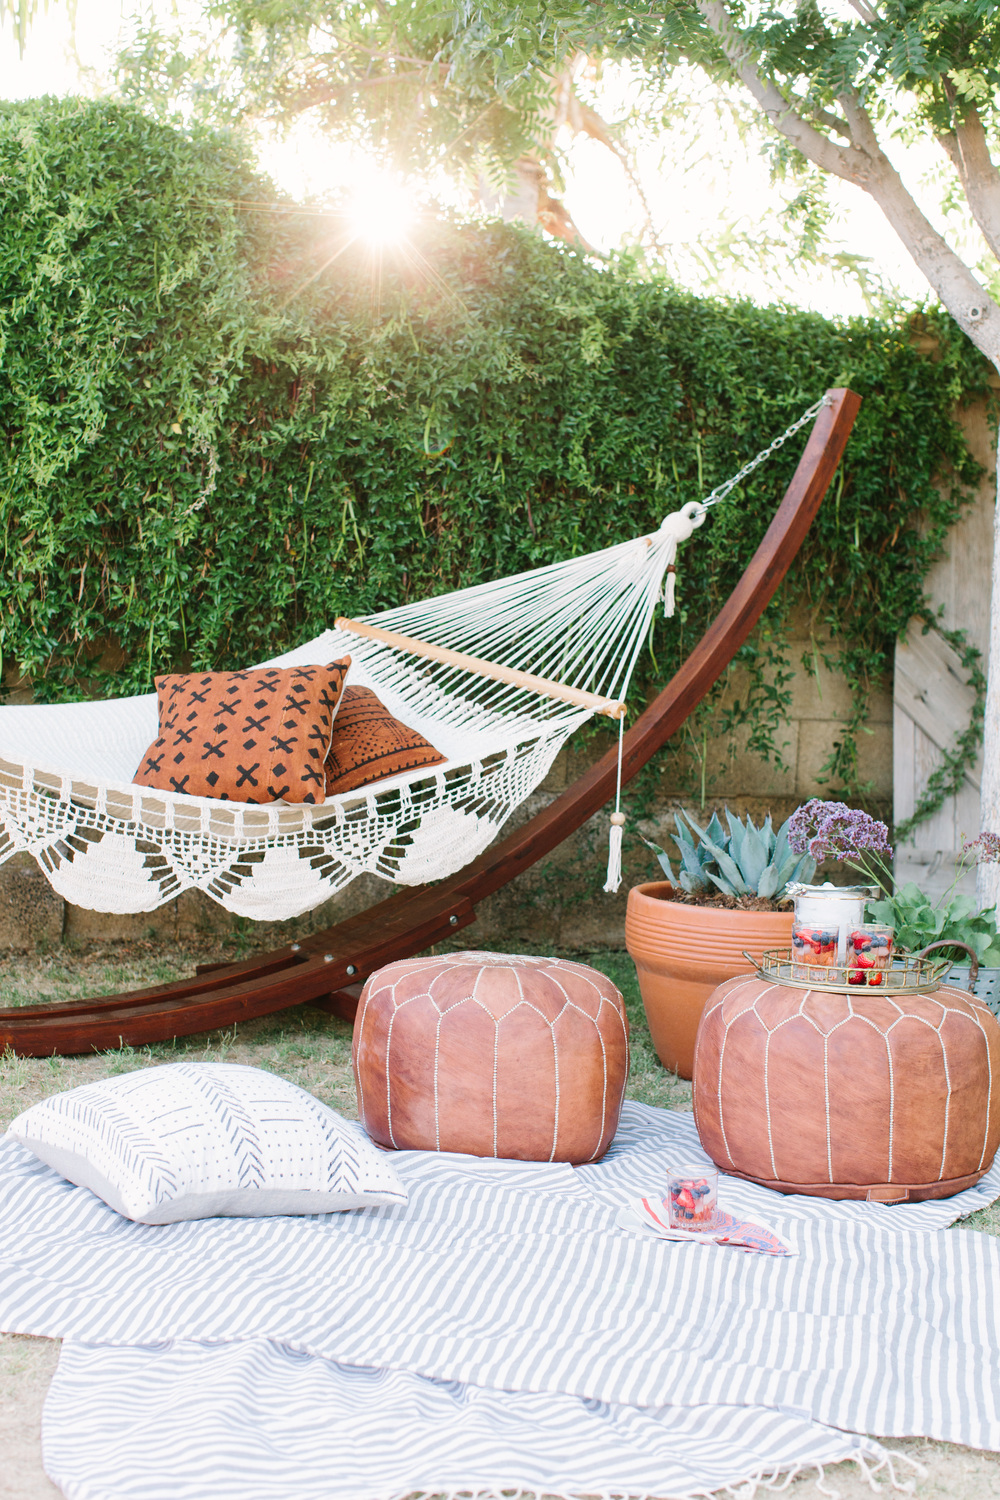 Lindsey's backyard is amazing! This hammock looks so dreamy!